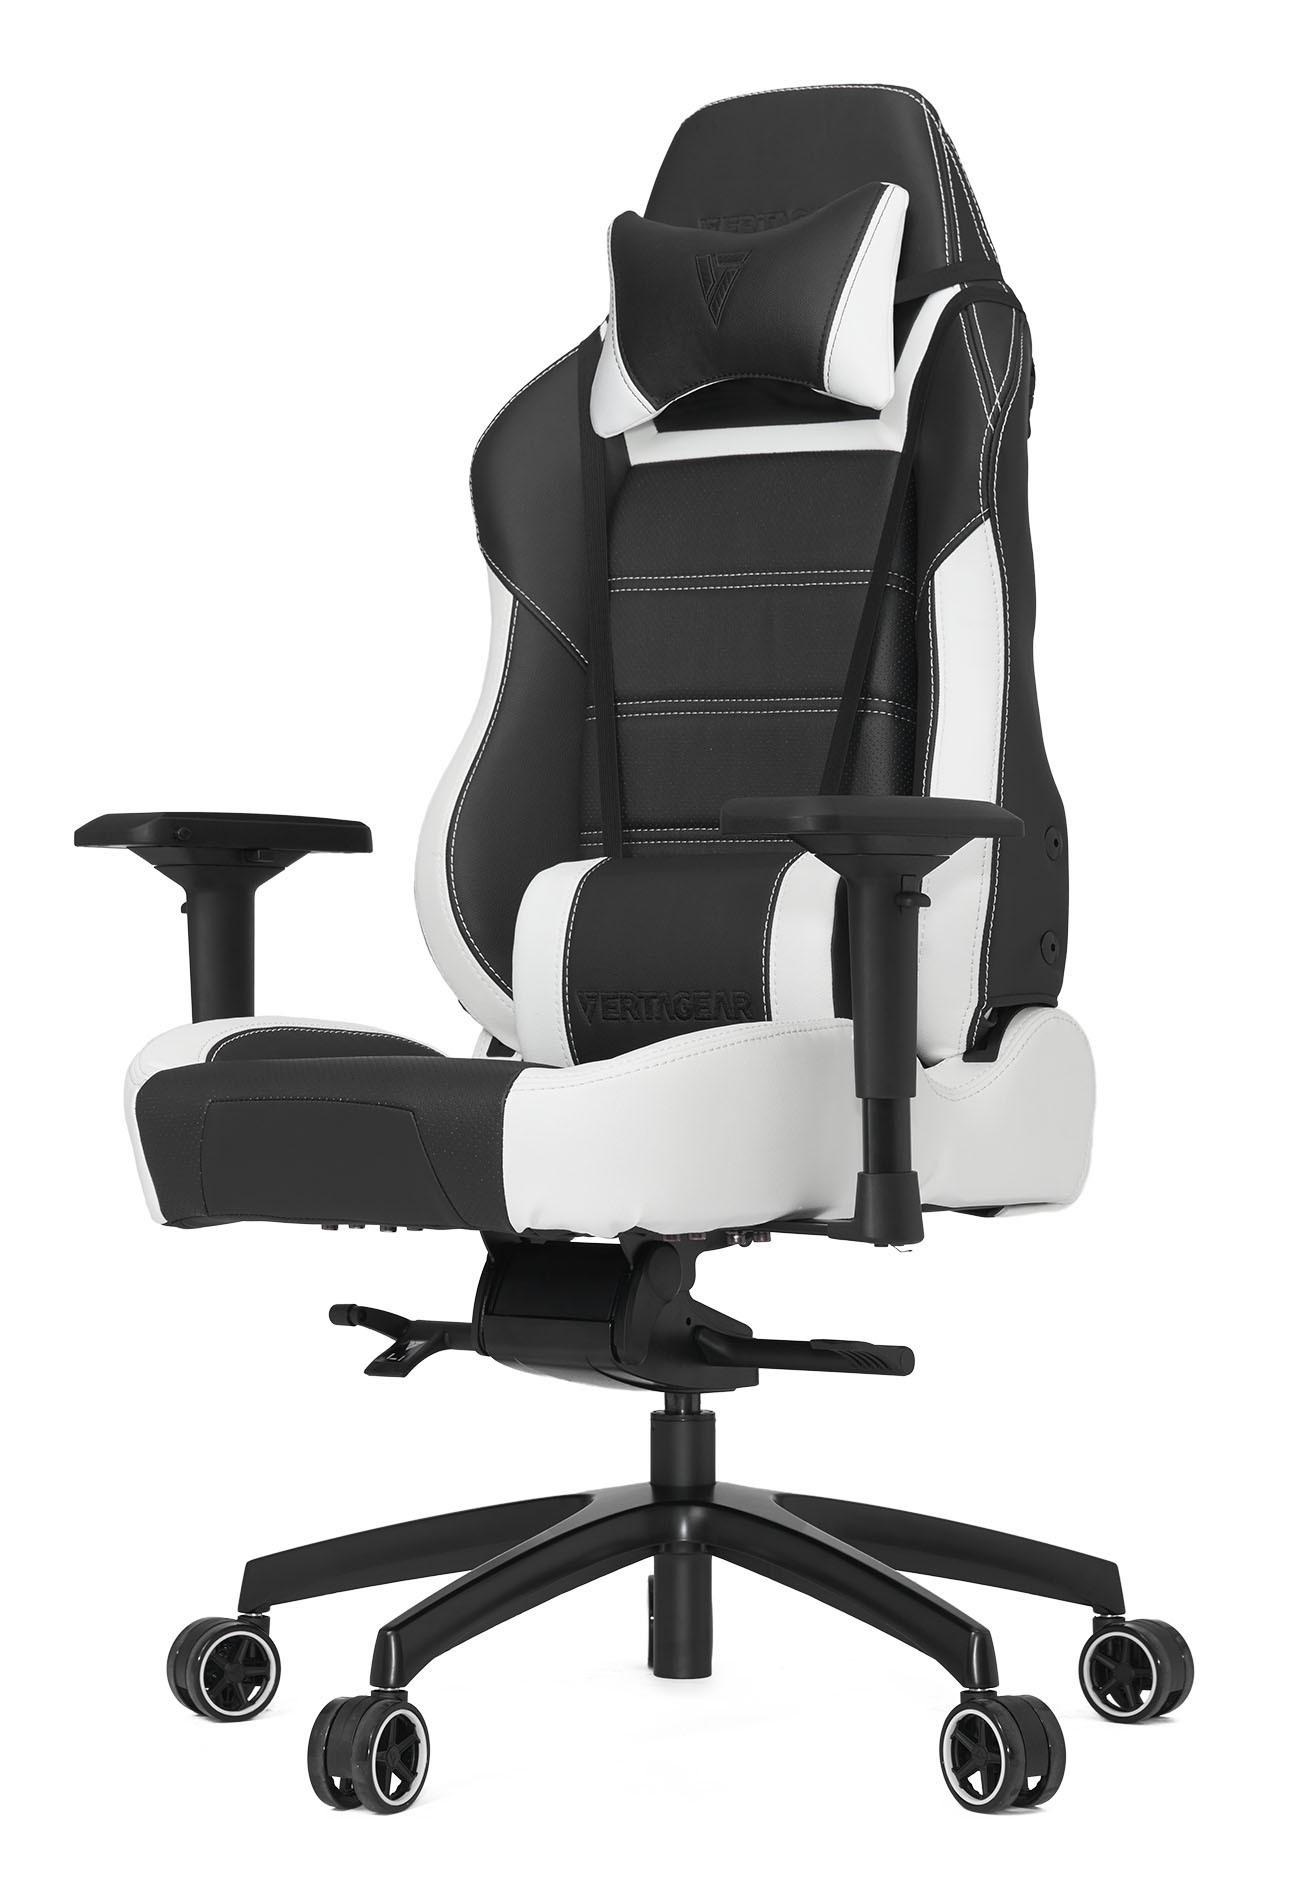 Геймерское кресло Vertagear Racing Series P-Line PL6000 Black/White